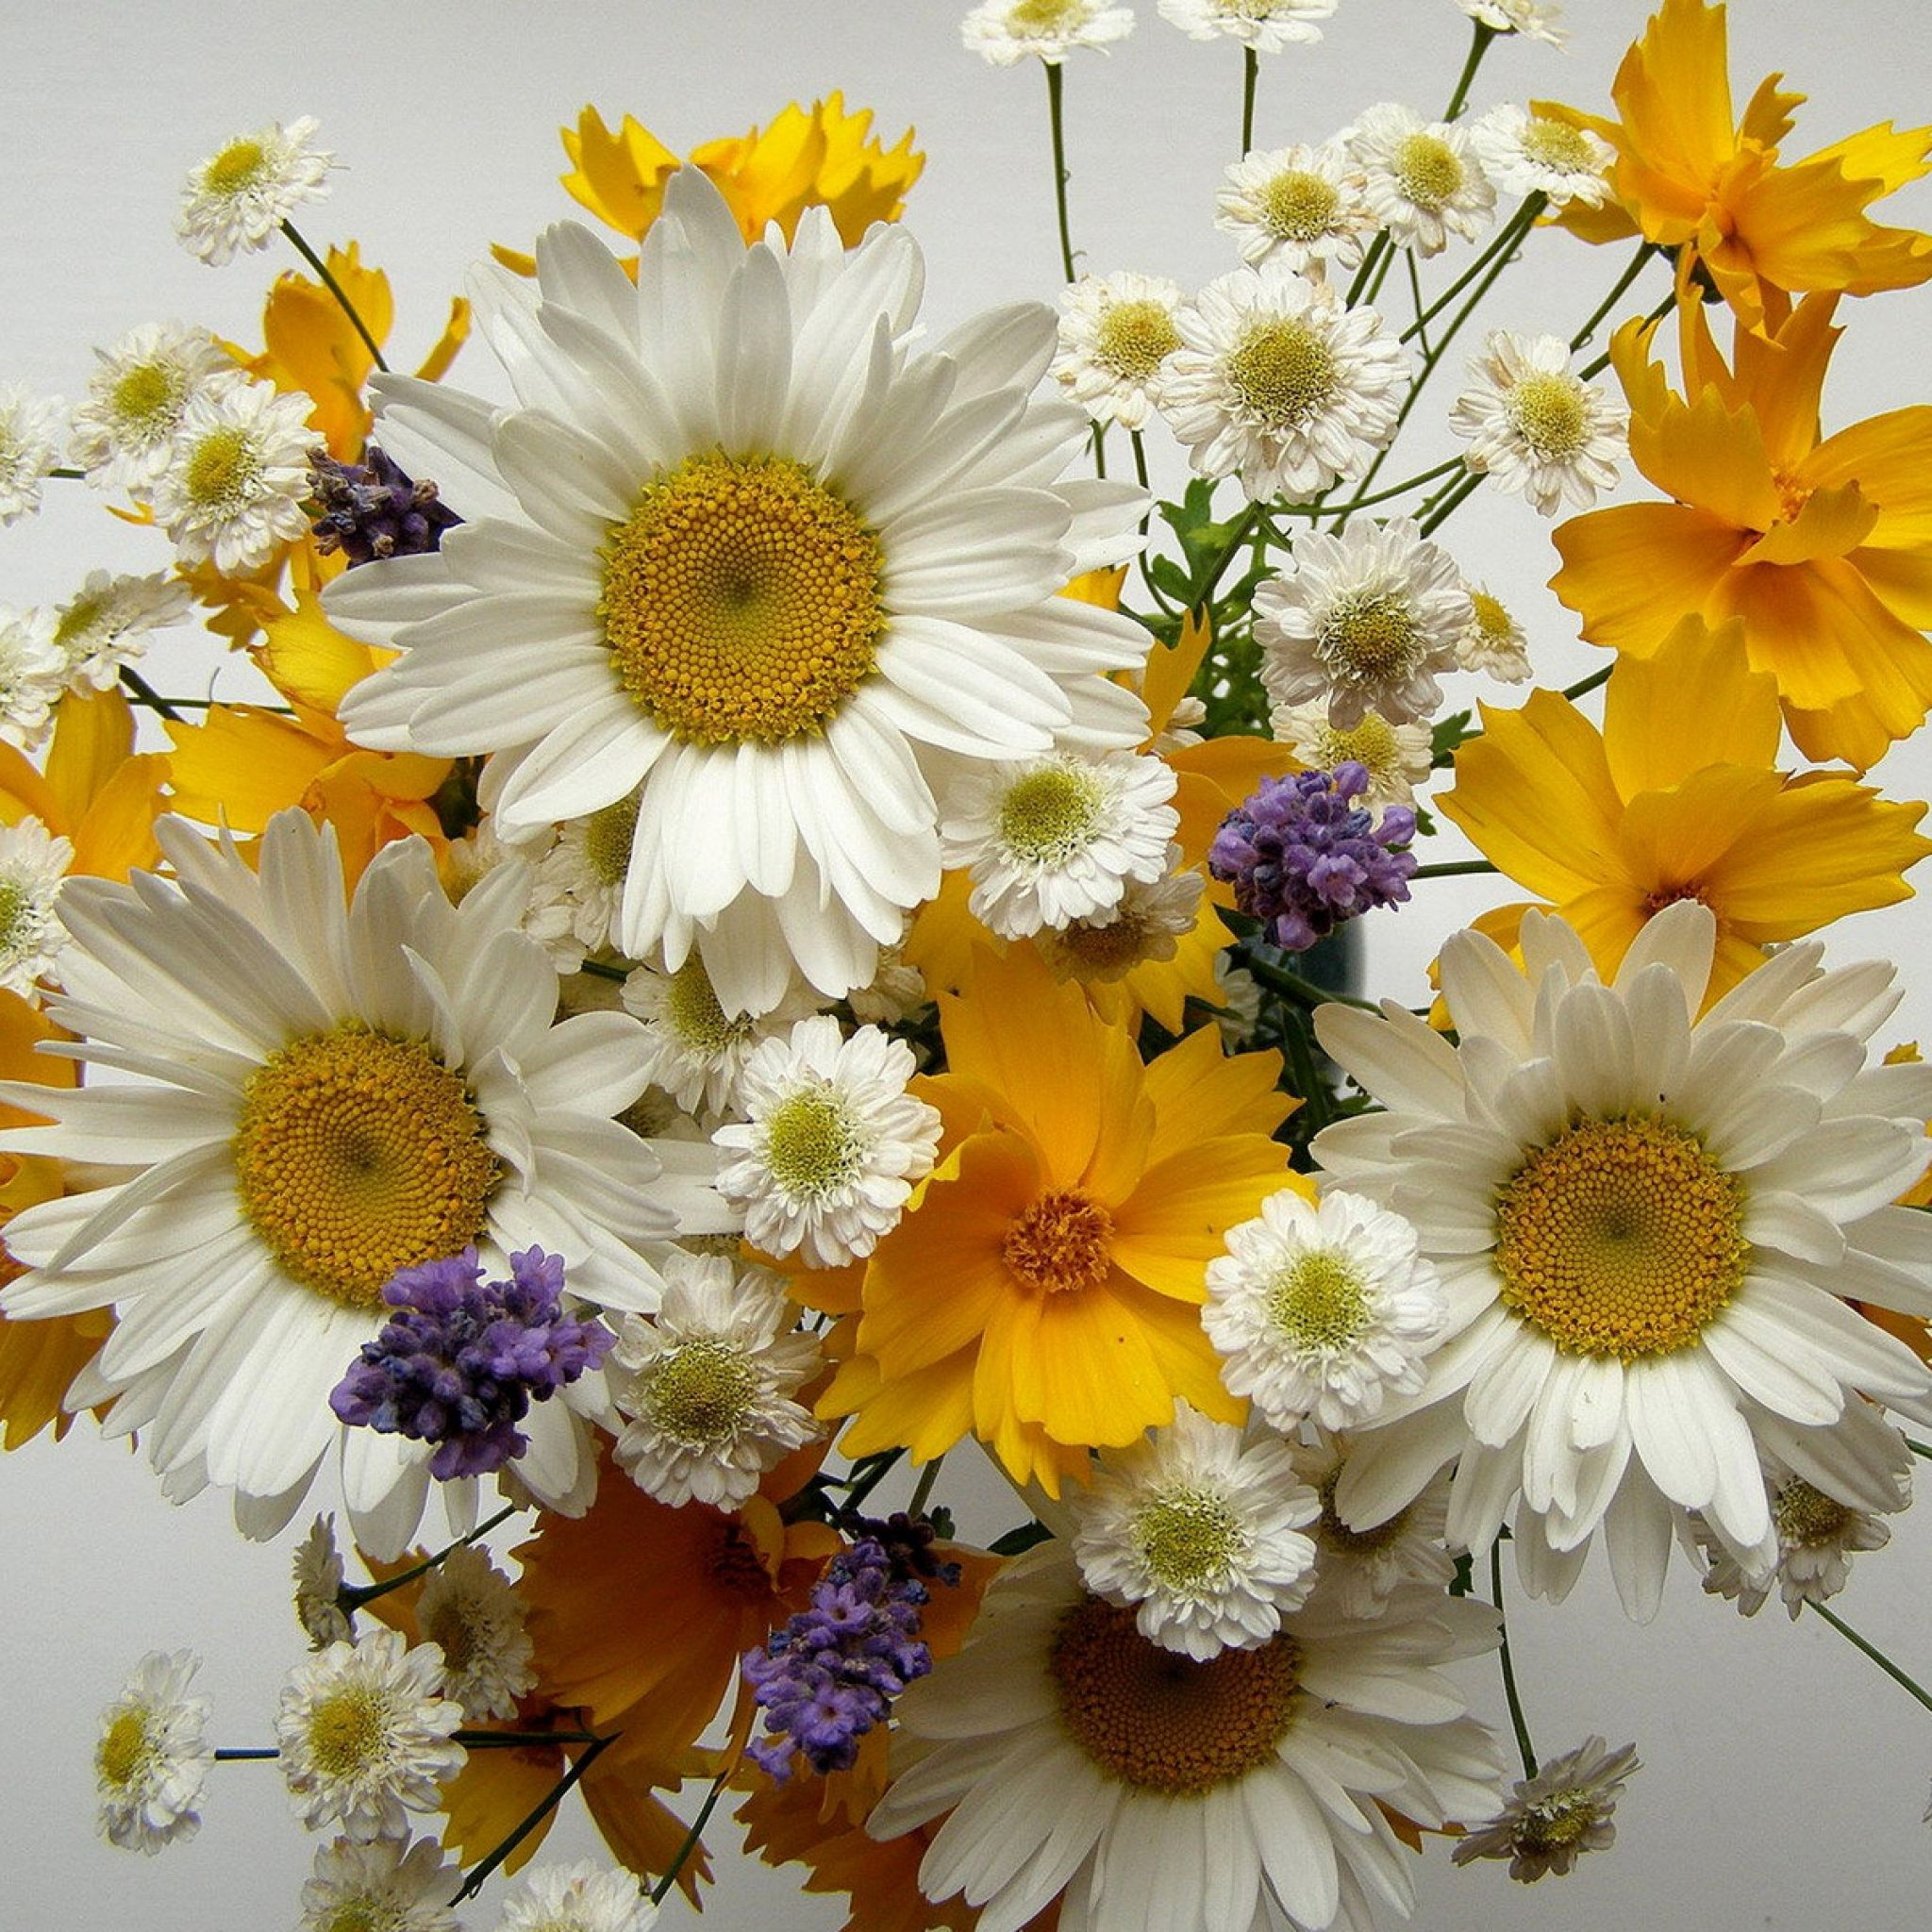 chamomile-big-small-flowers-bouquets-composition-2048x2048.jpg (2048 ...